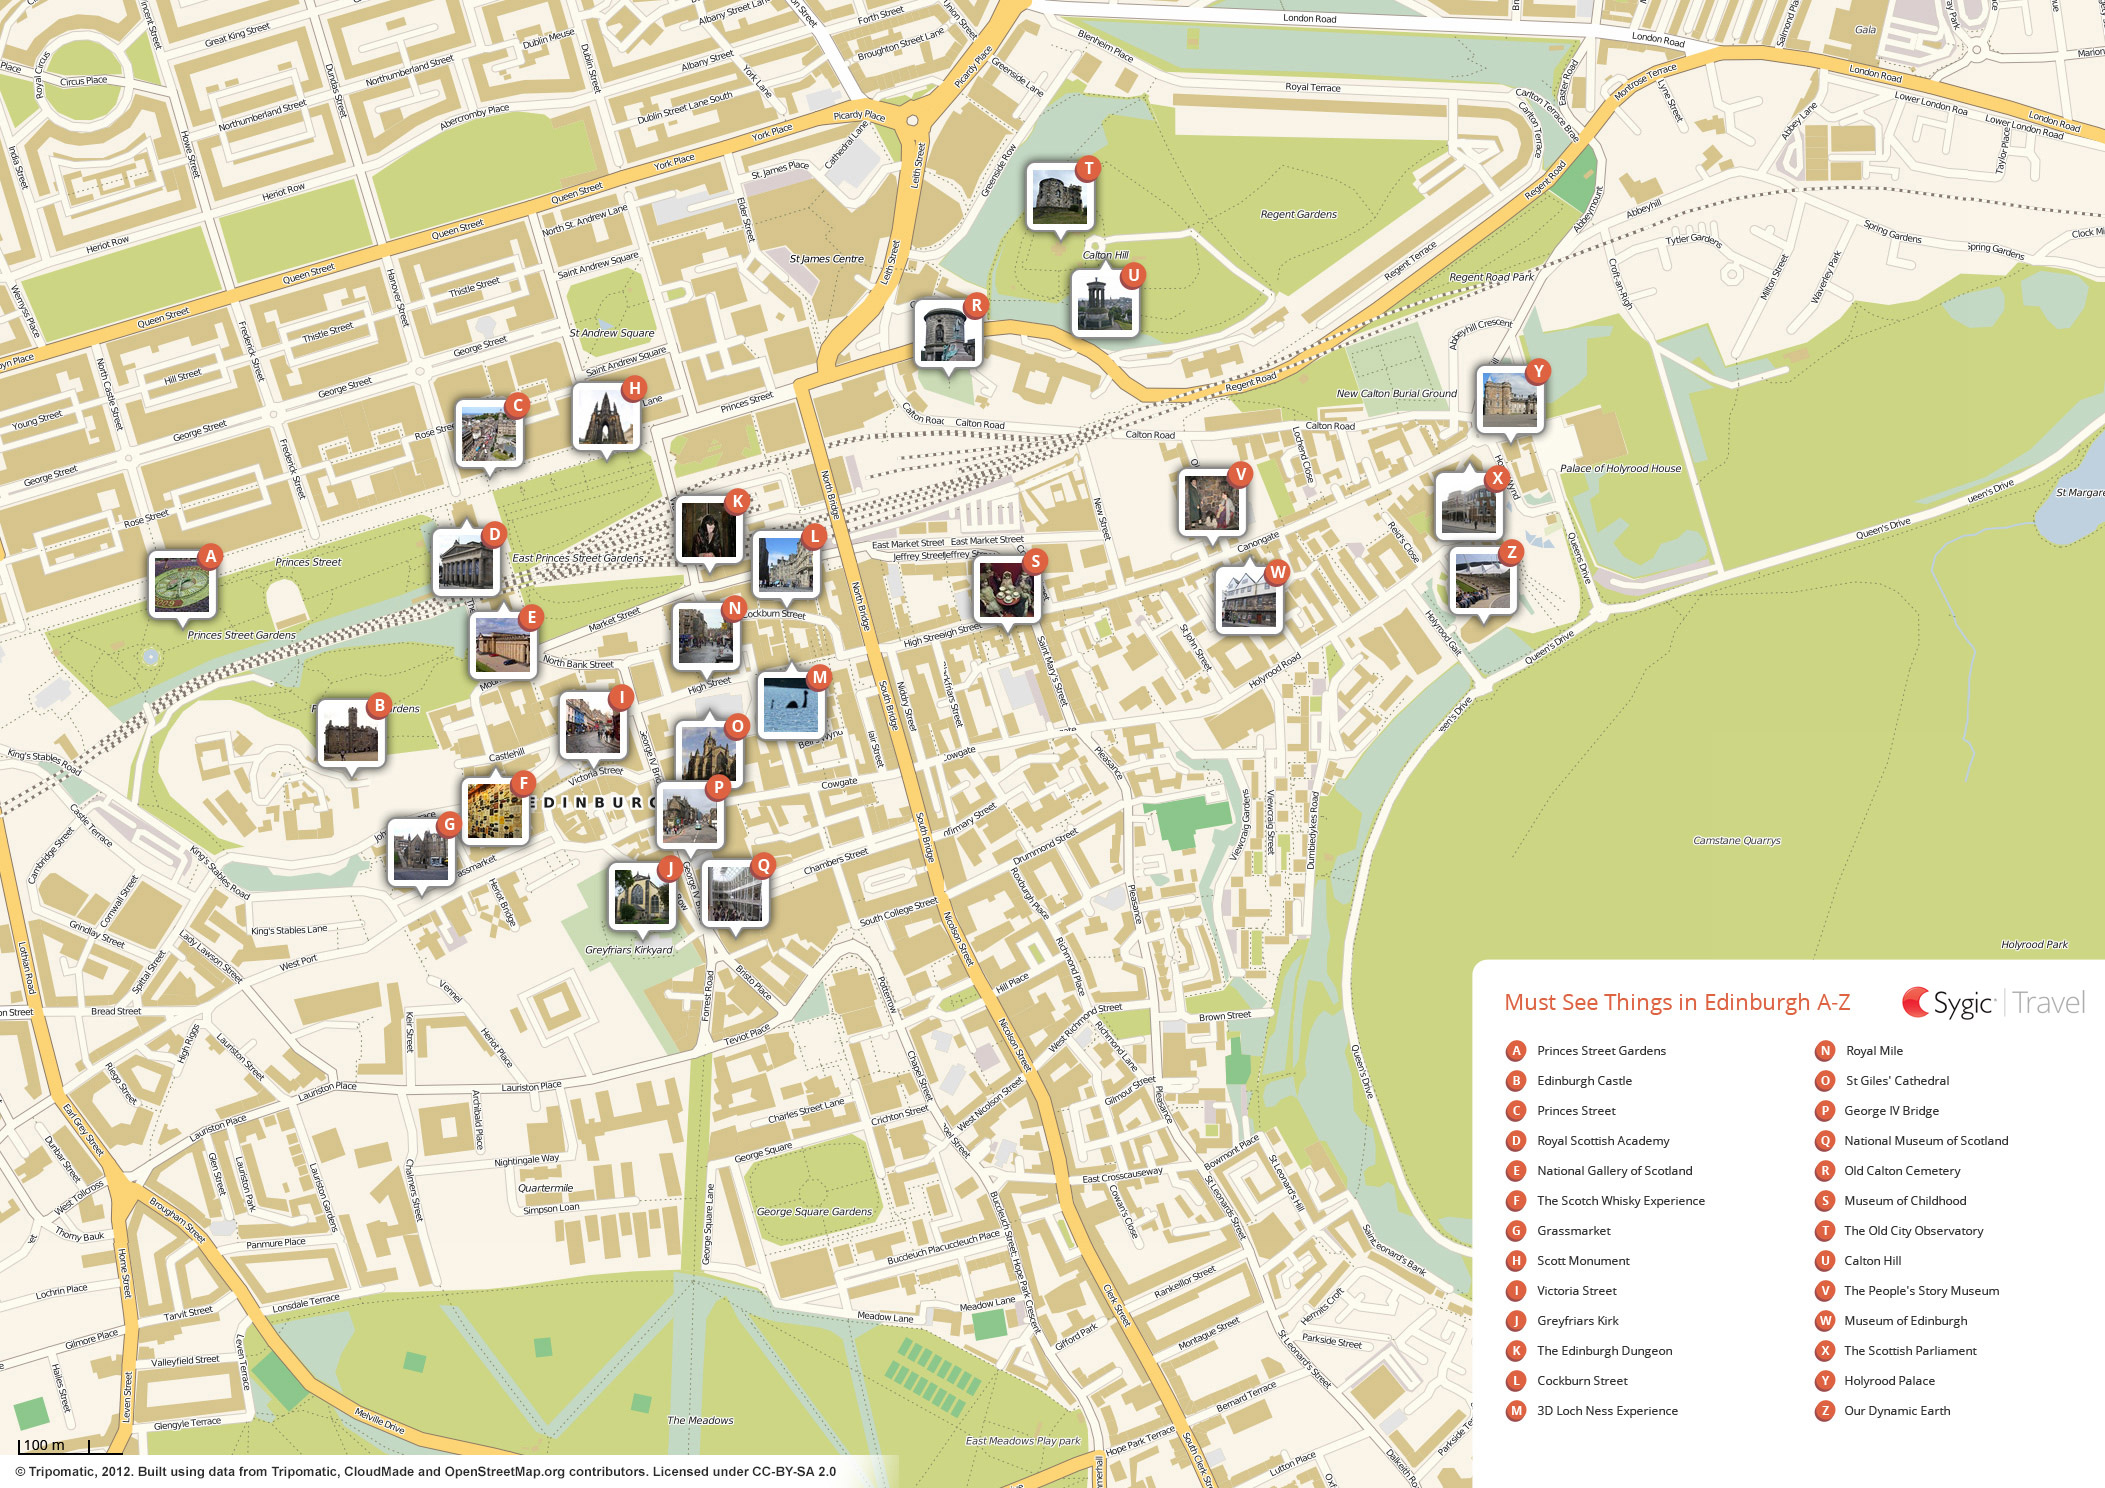 Edinburgh Printable Tourist Map Sygic Travel